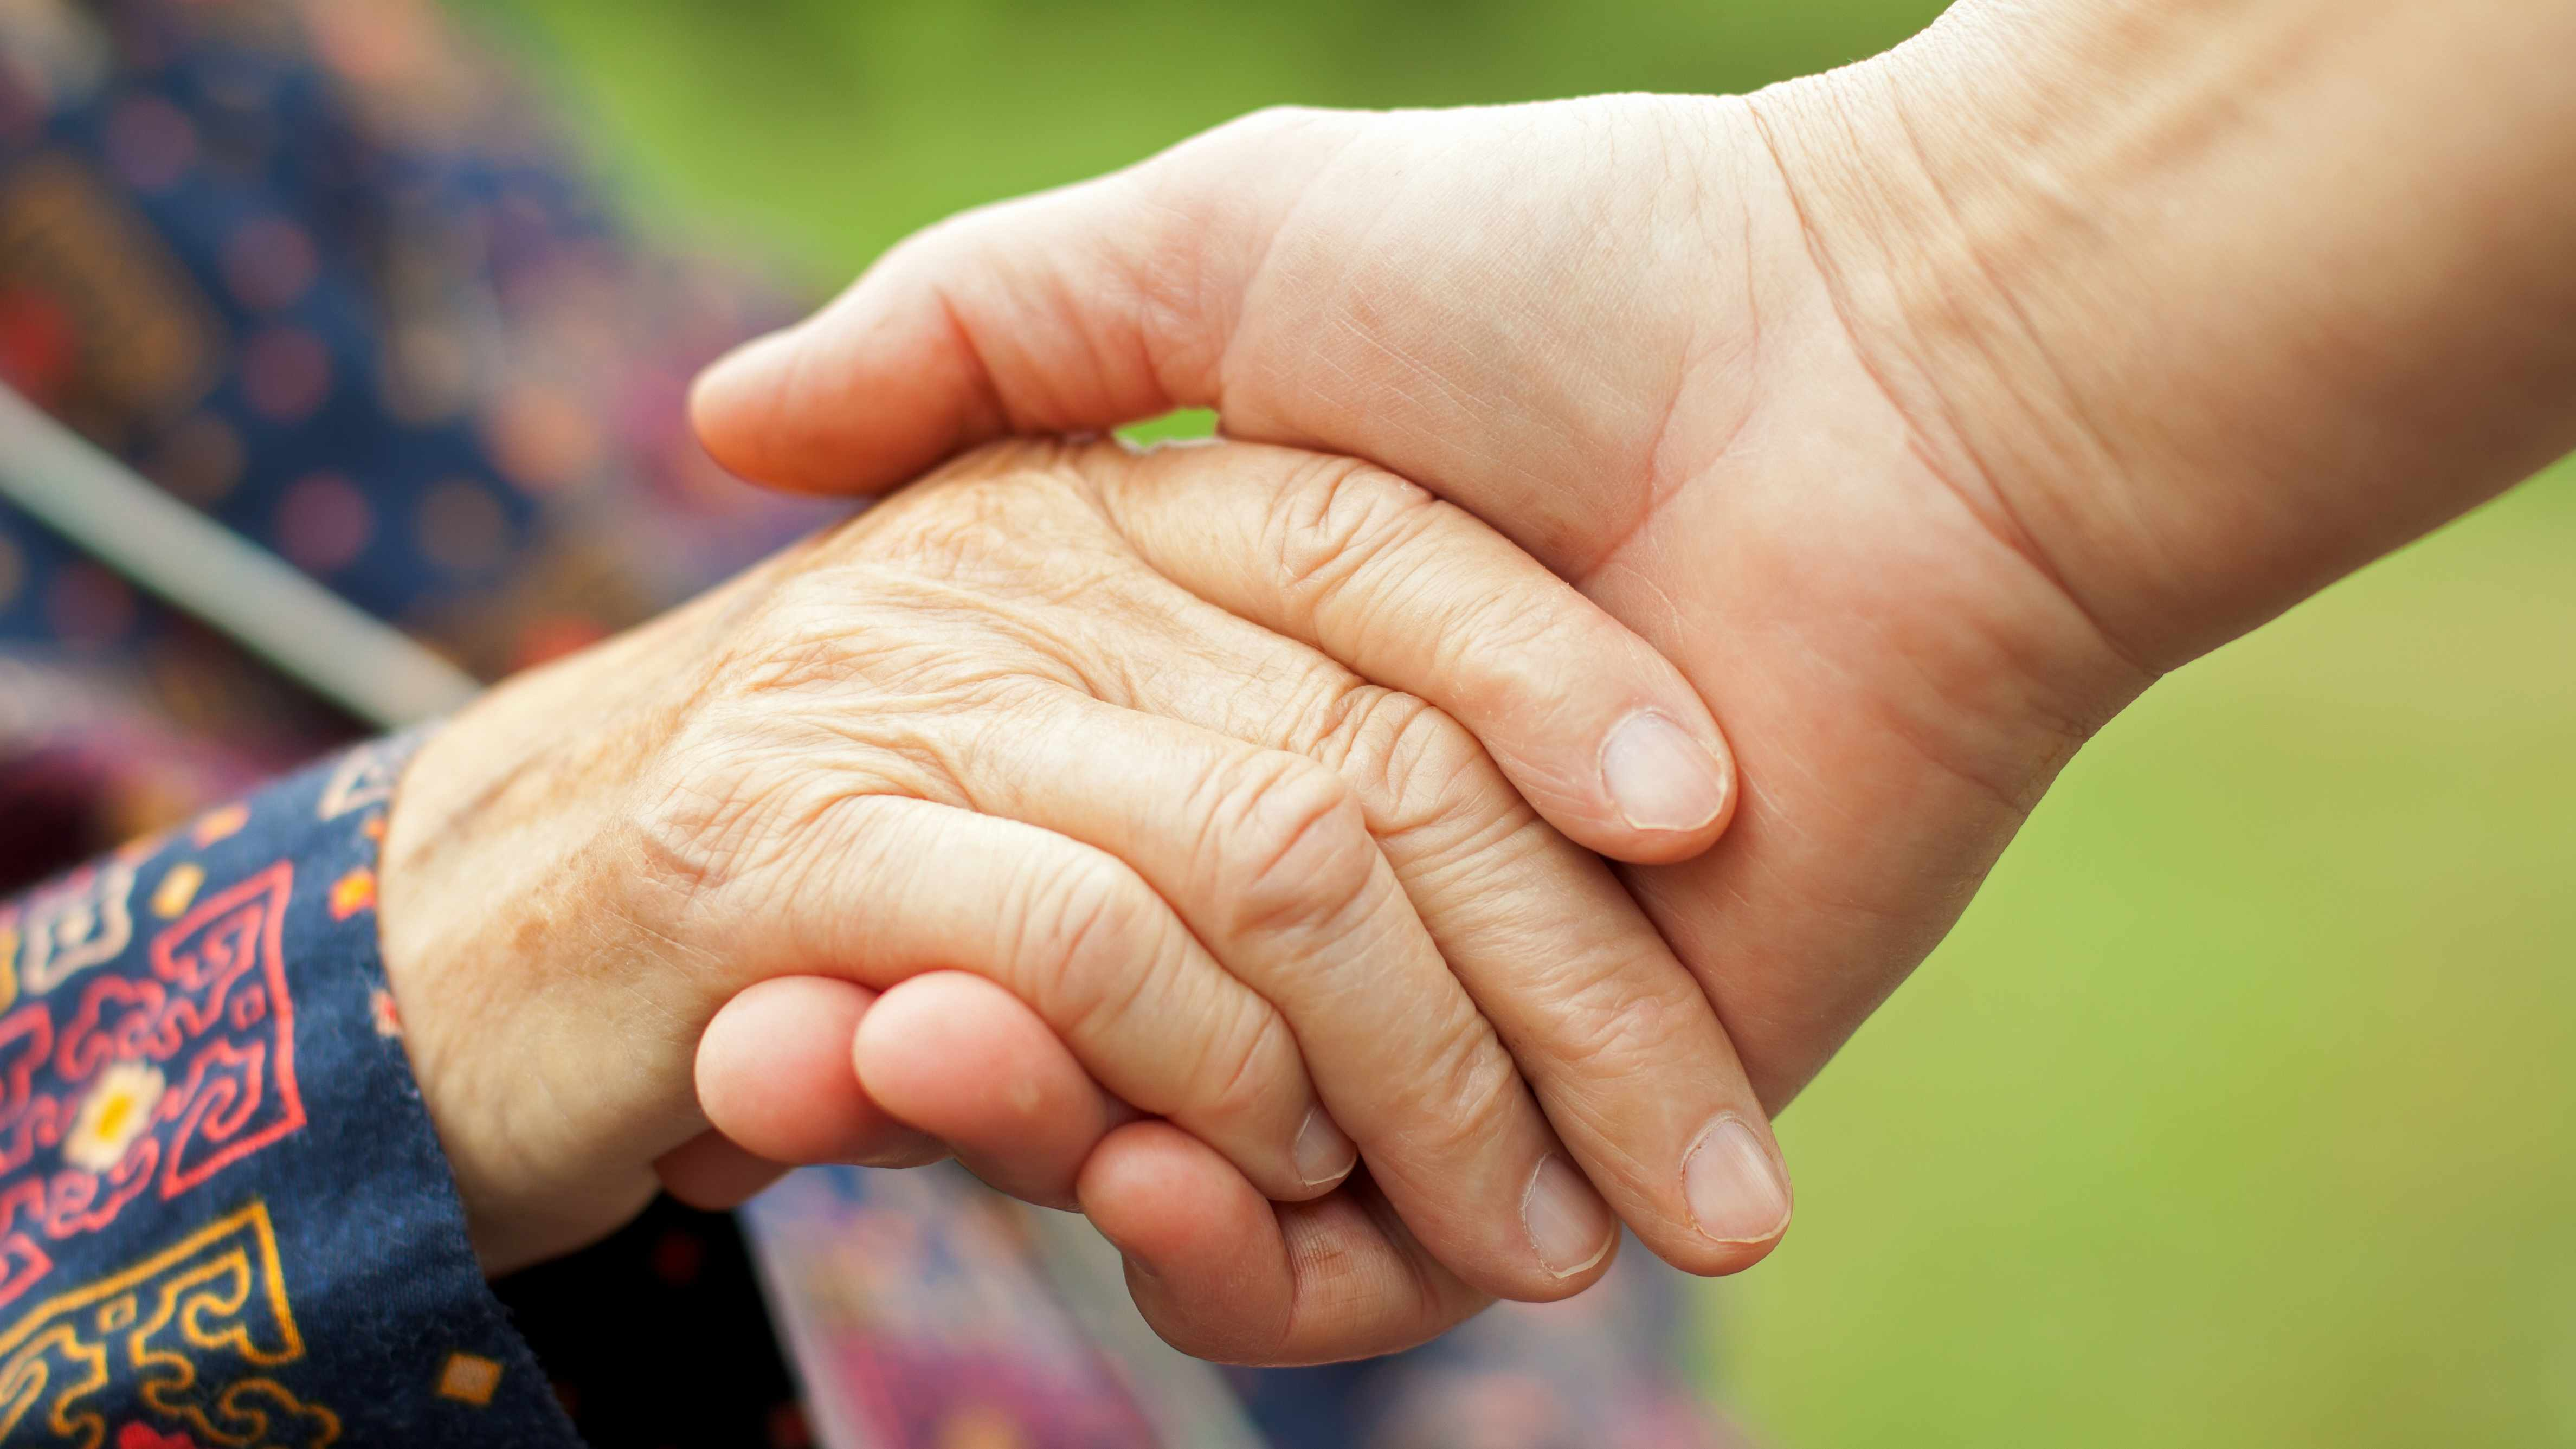 a caregiver holding the hand of an elderly person, senior citizen with arthritis, maybe Parkinson's disease